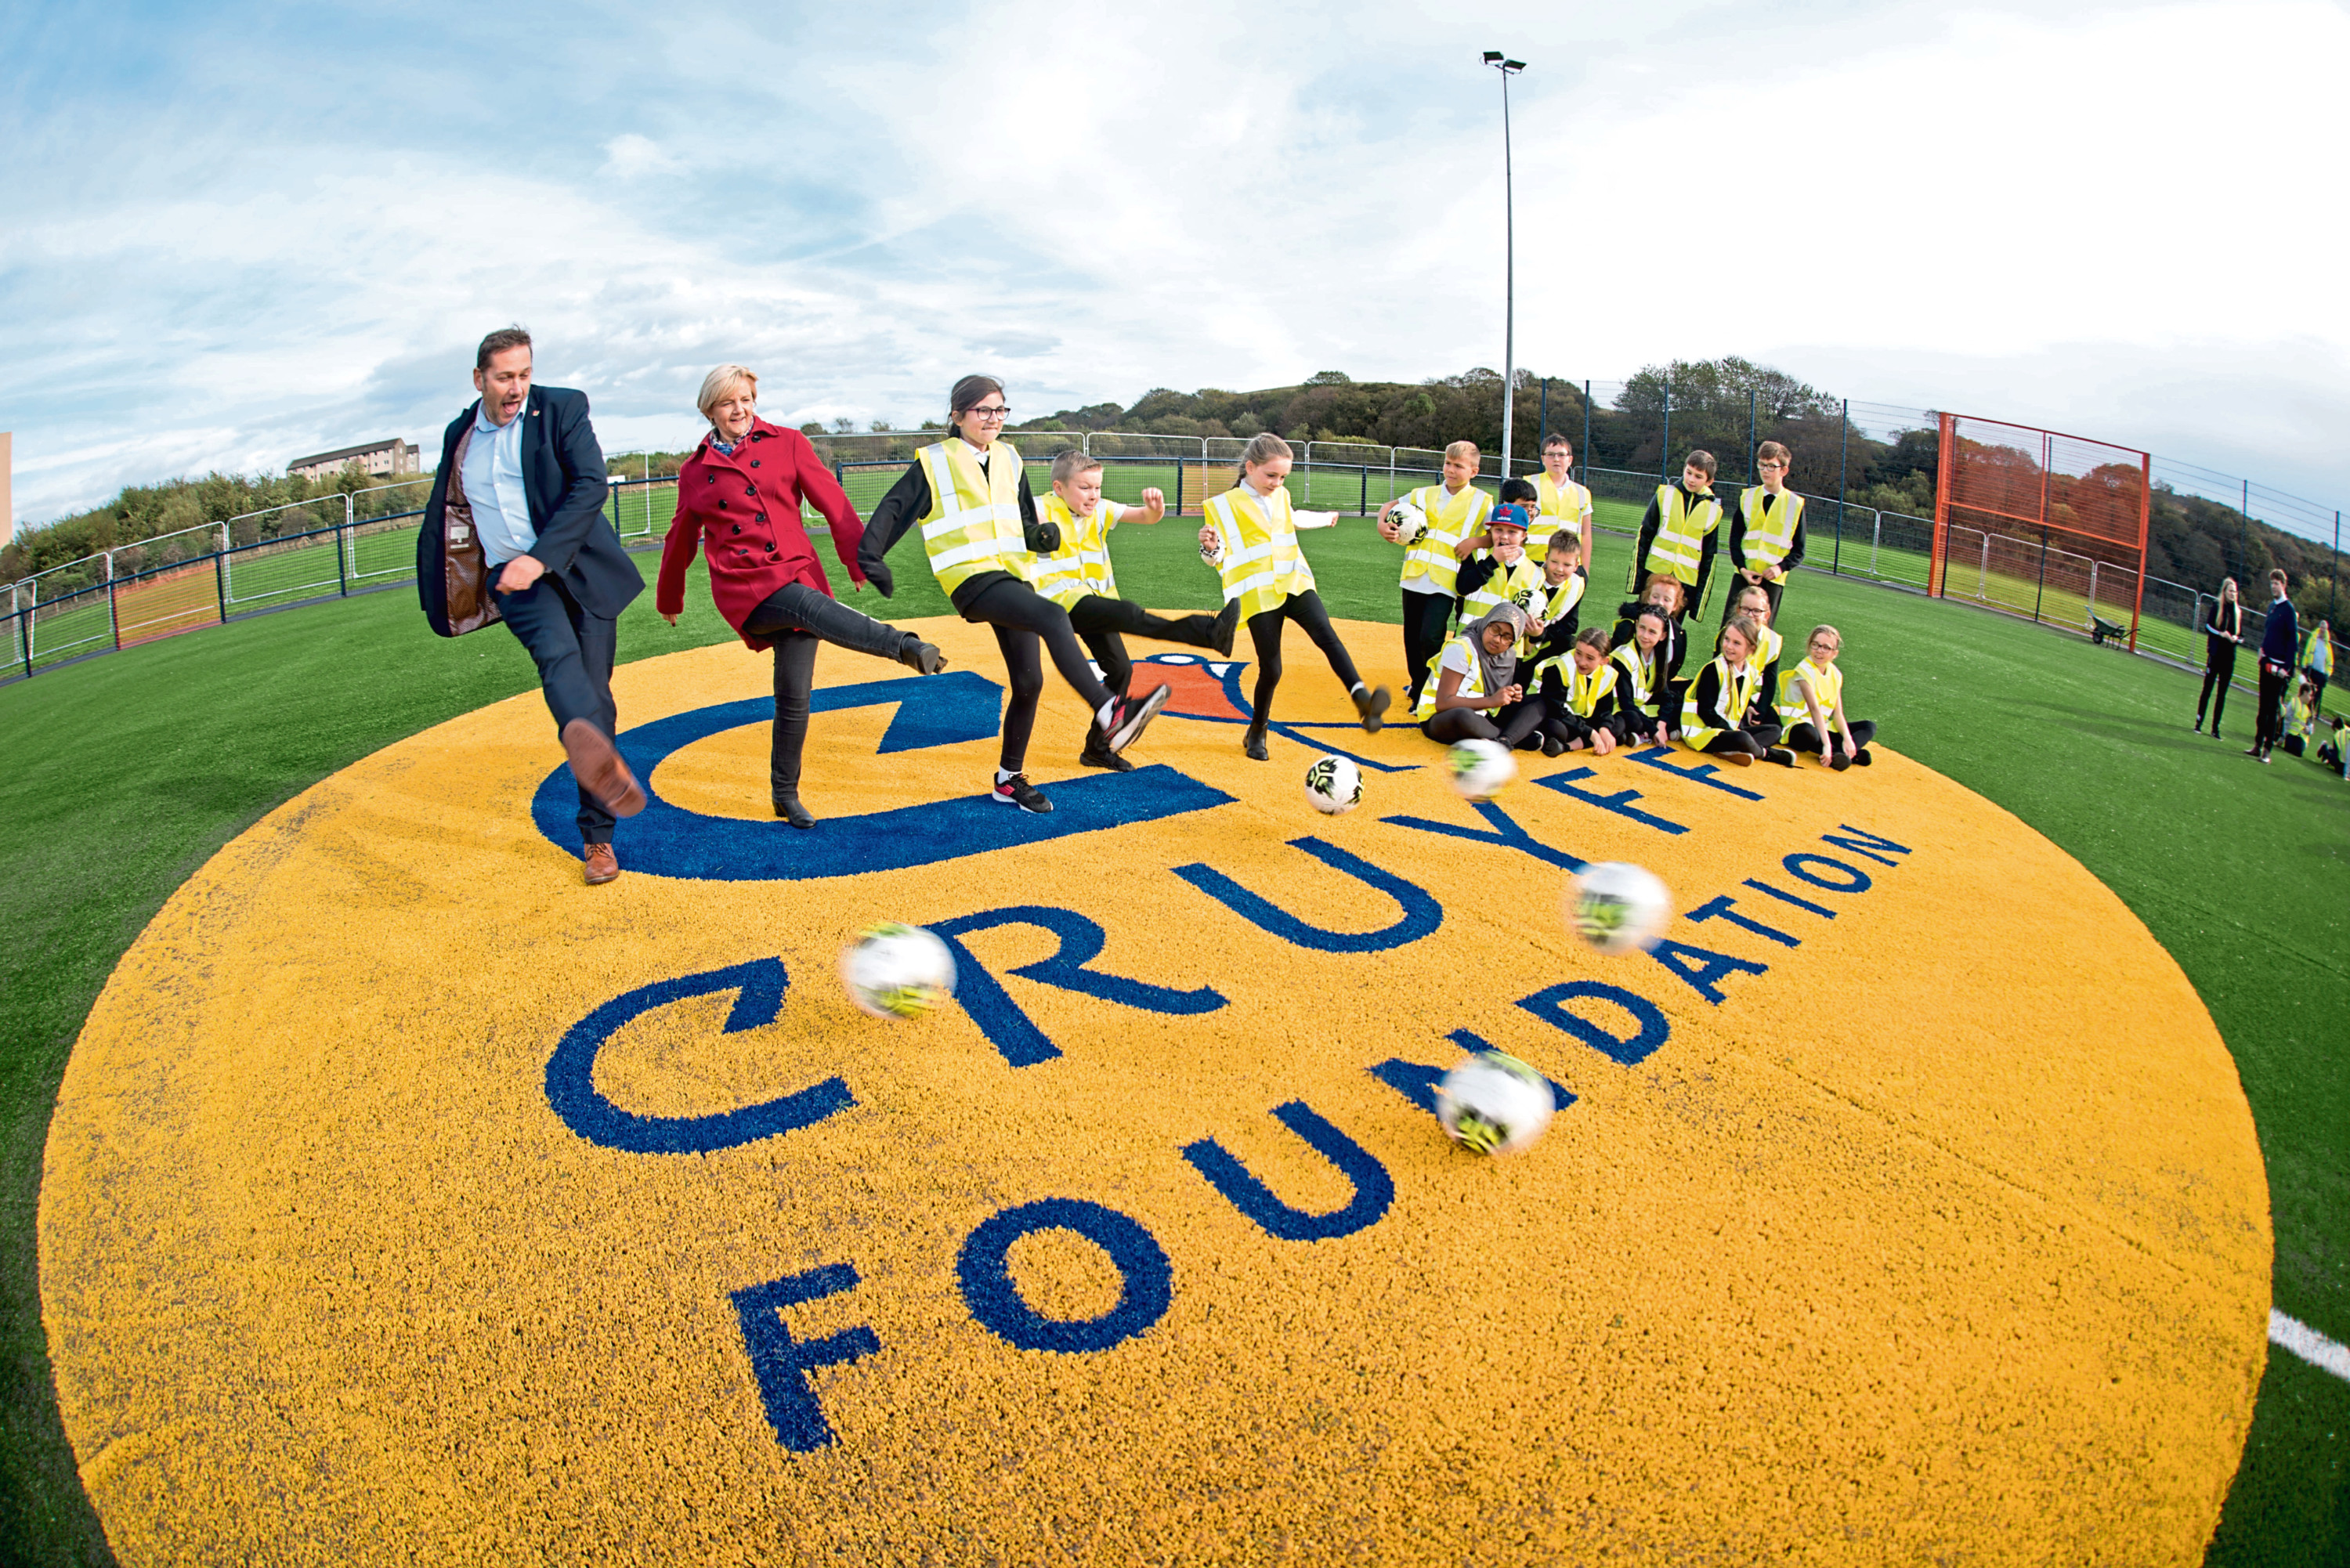 Councillor Jenny Laing and Councillor Douglas Lumsden try out the pitch with help from Tullos Primary School